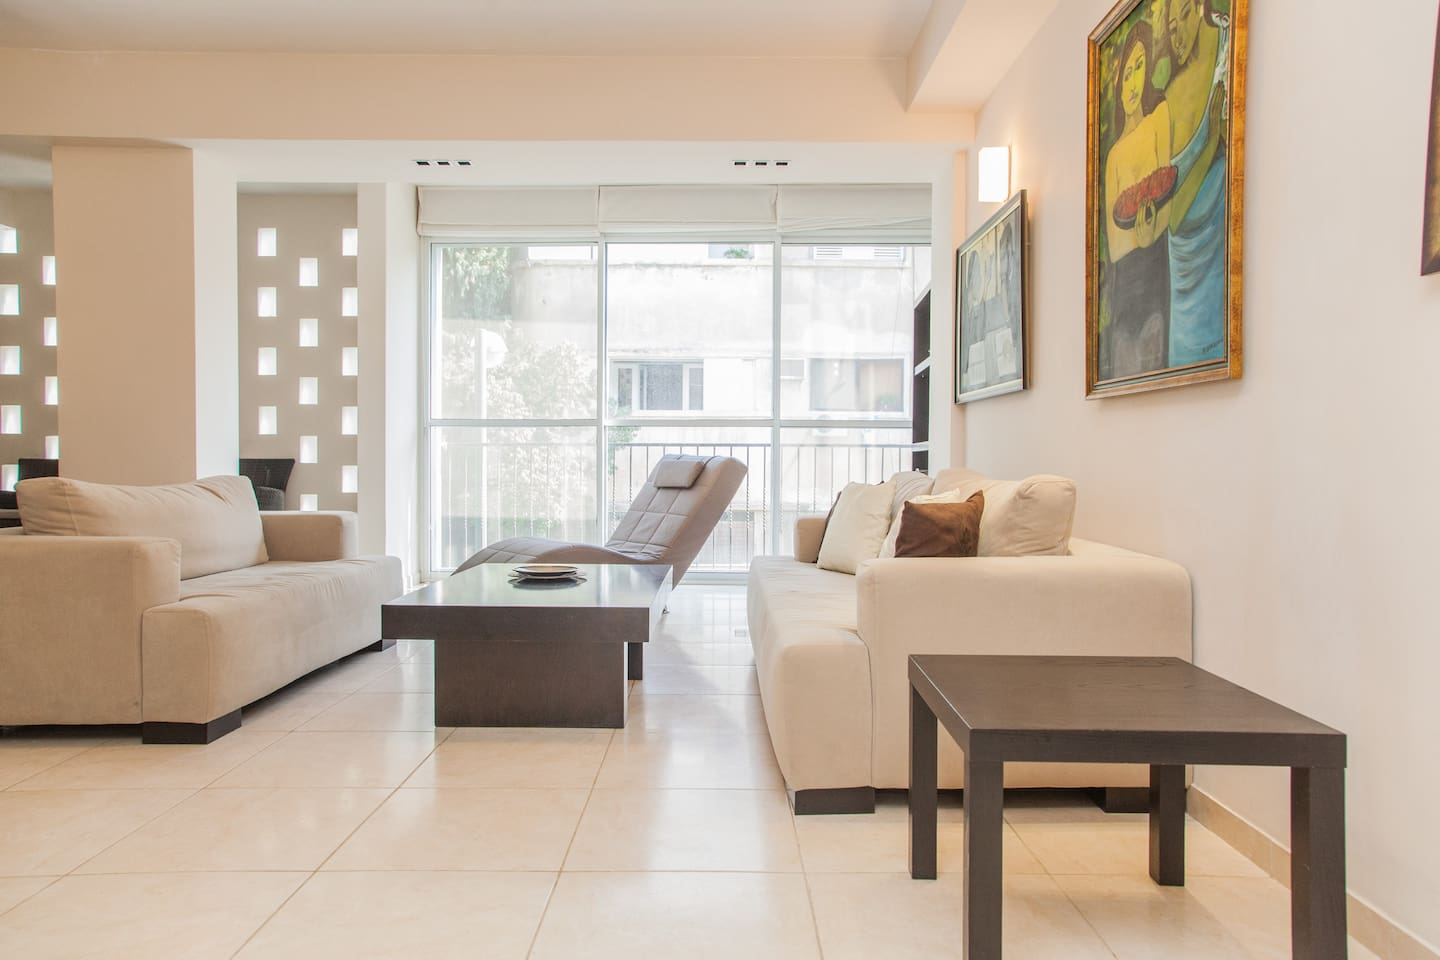 Ben Gurion Blvd - Superb 2 bedrooms